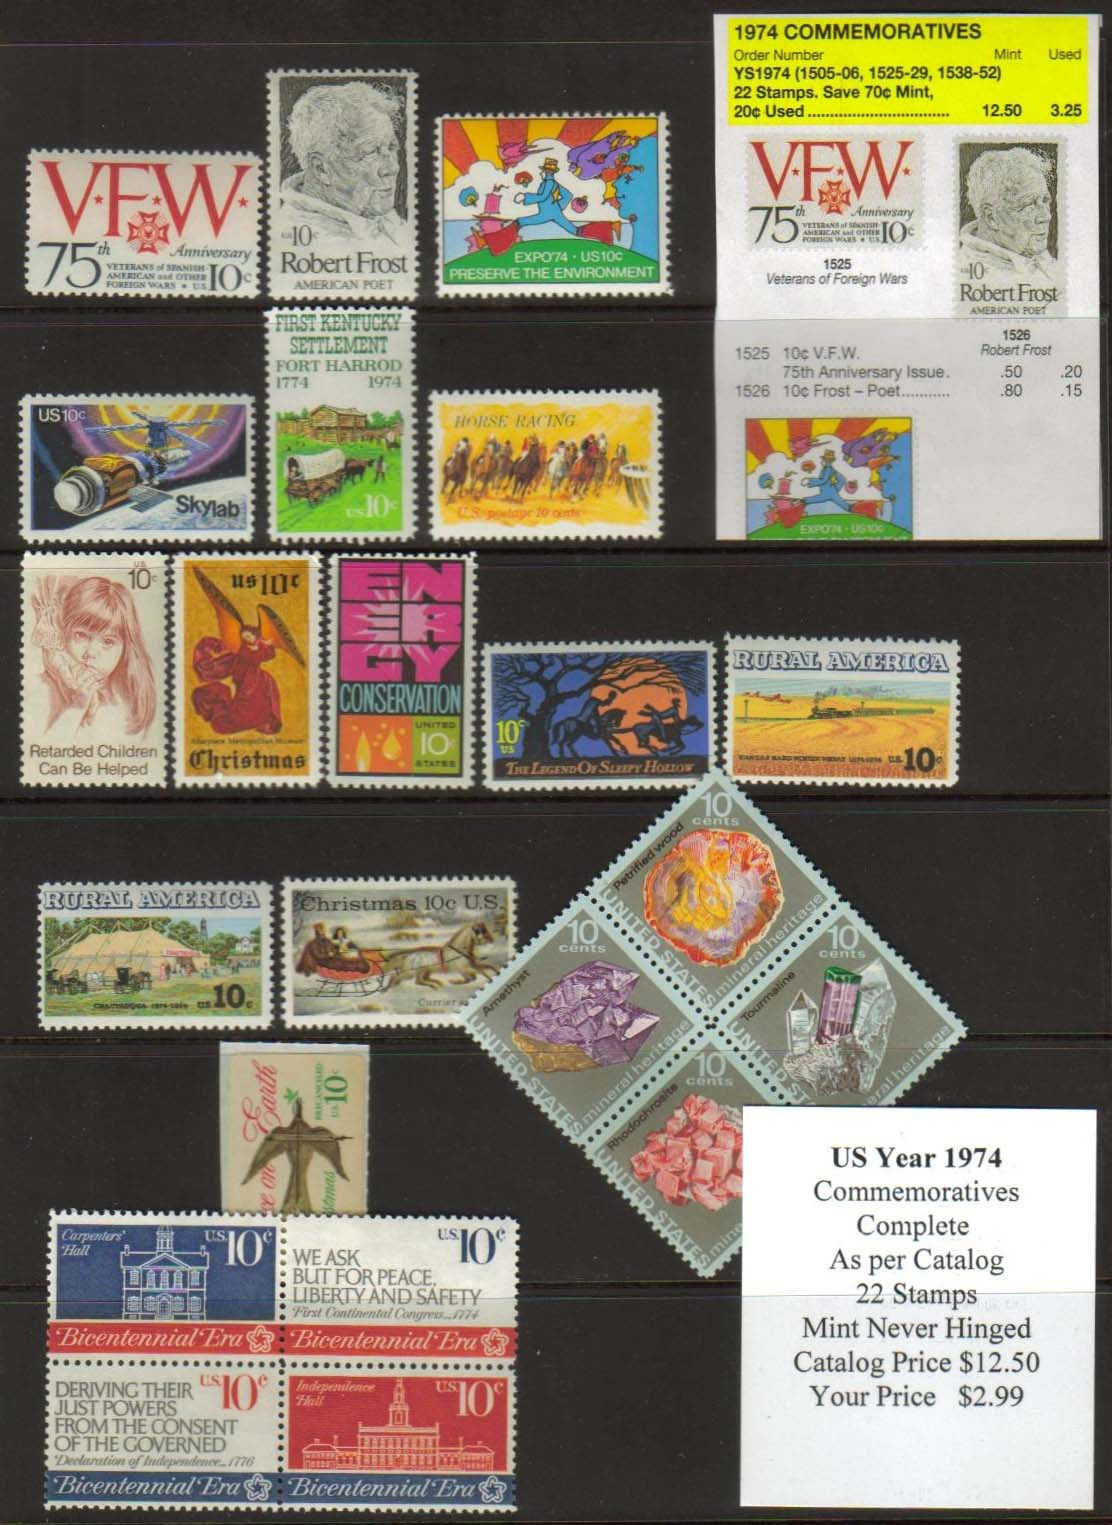 1974 COMMEMORATIVES, 22 STAMPS